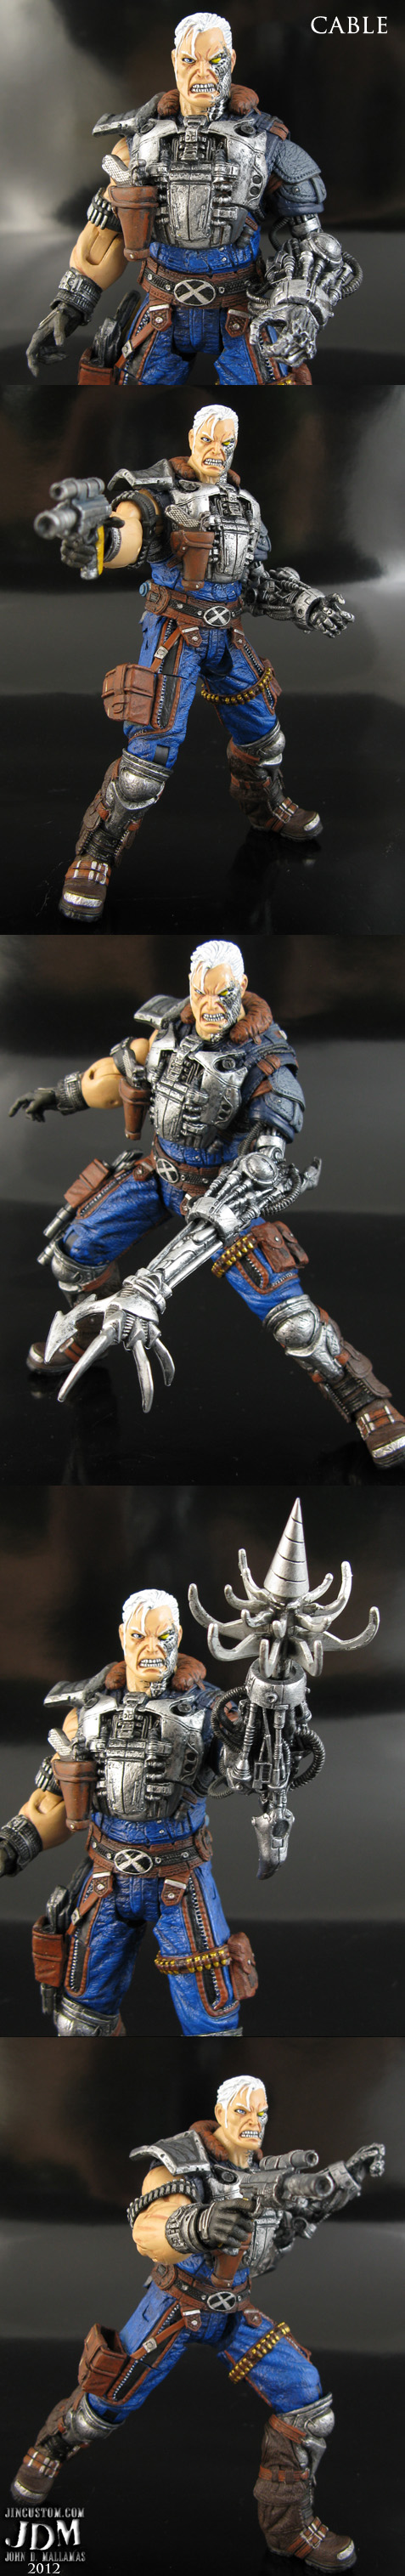 Custom Cable Action Figure